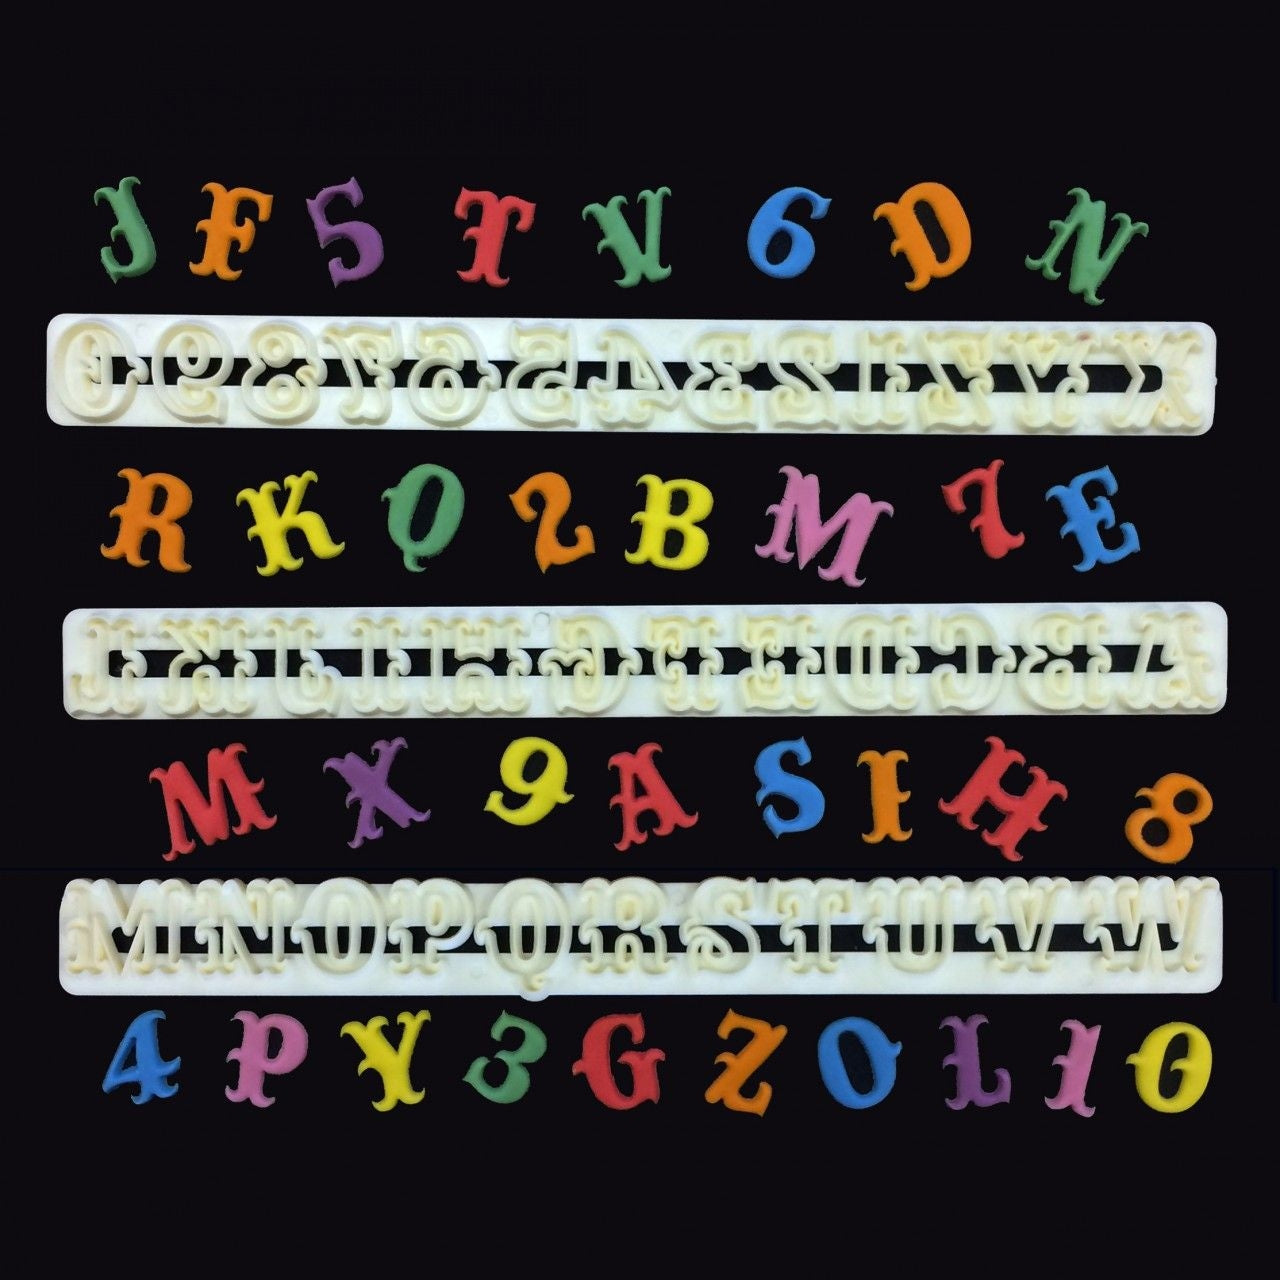 FMM CARNIVAL Alphabet and Number tappit set